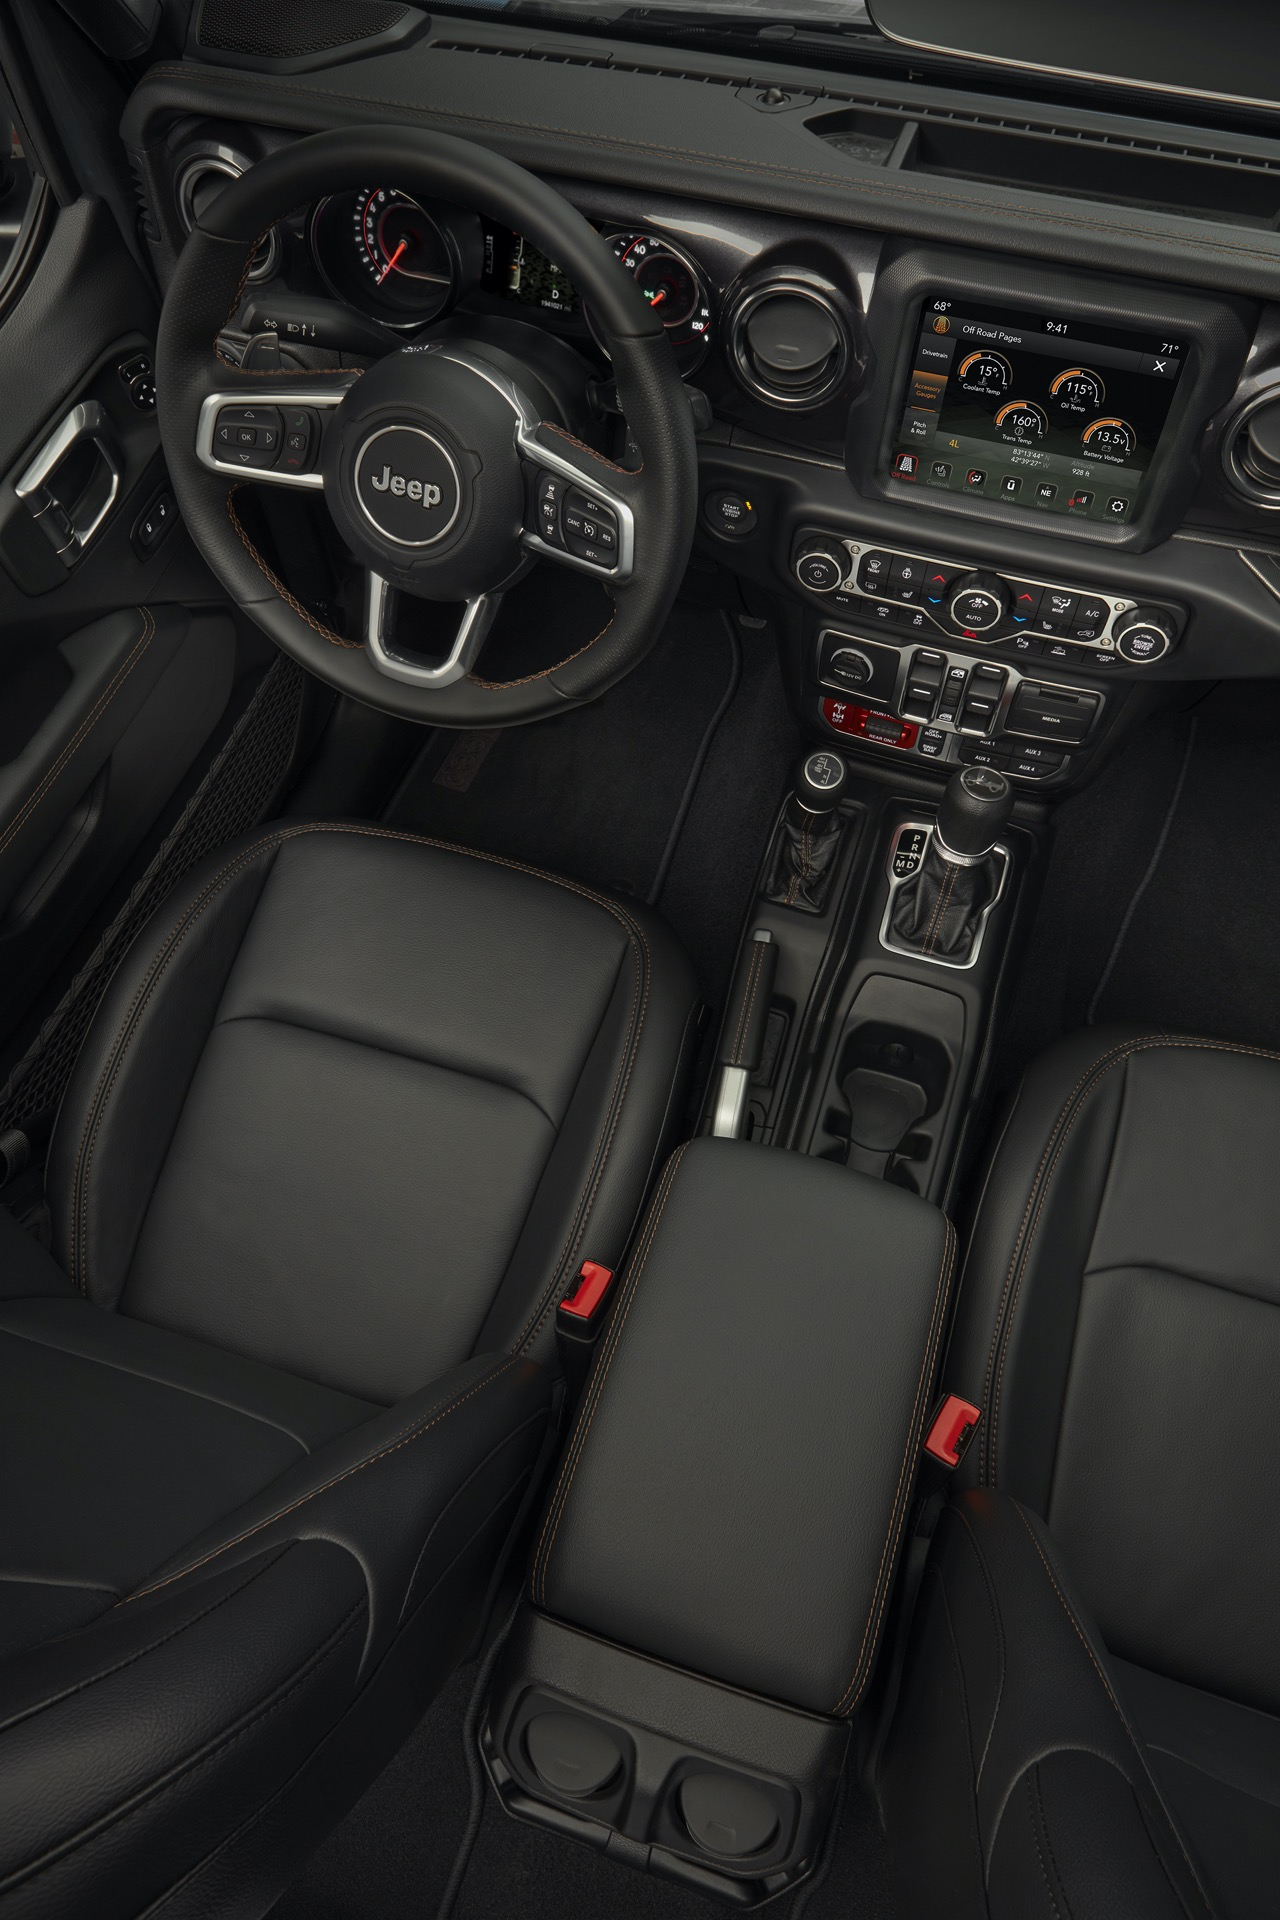 2021 Jeep® Wrangler Rubicon 392 Interior